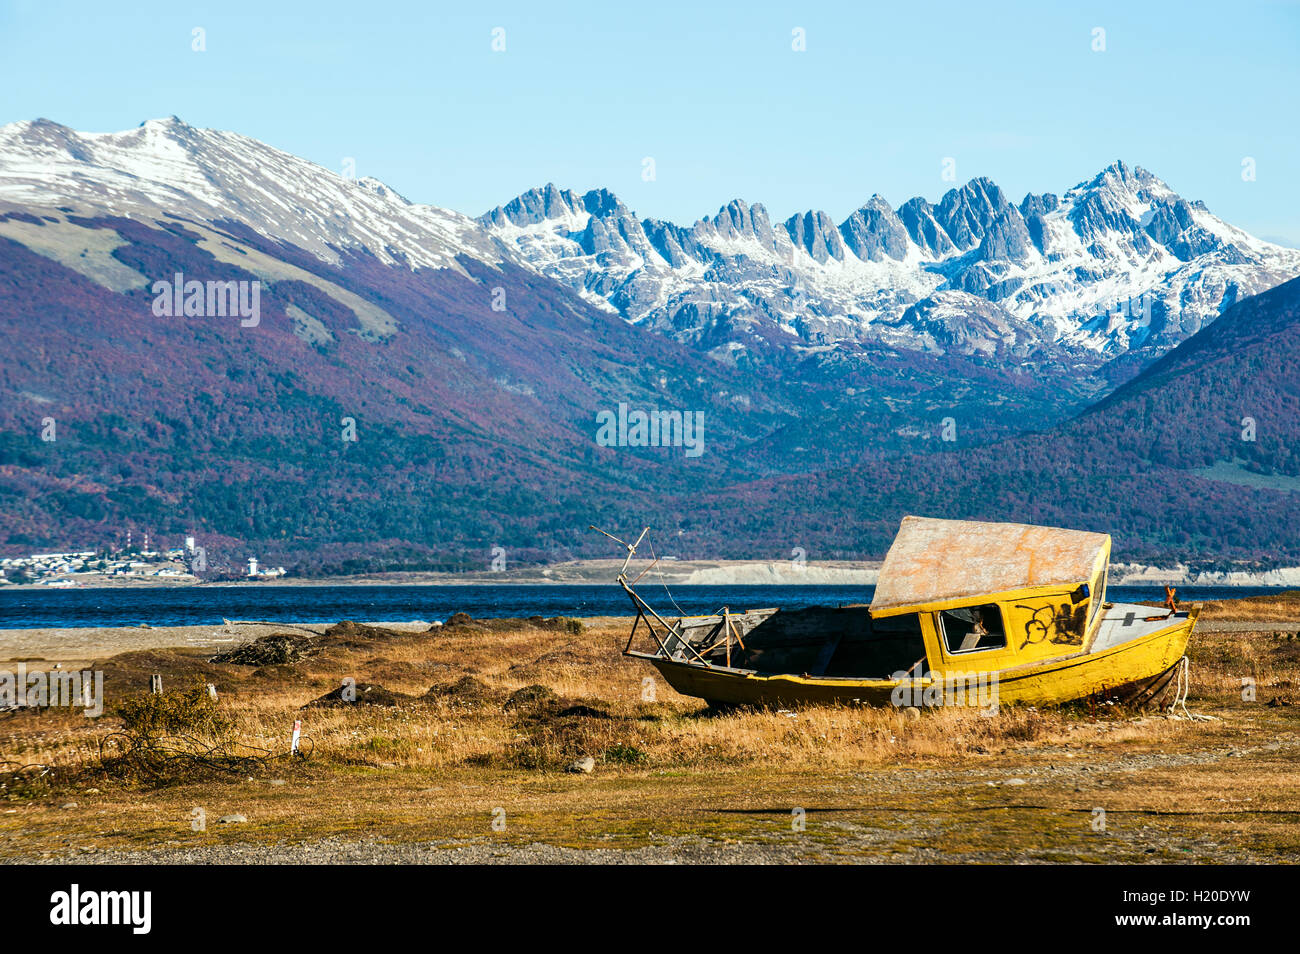 Autumn in Patagonia. Tierra del Fuego, Beagle Channel and Chilean territory, view from the Argentina side - Stock Image